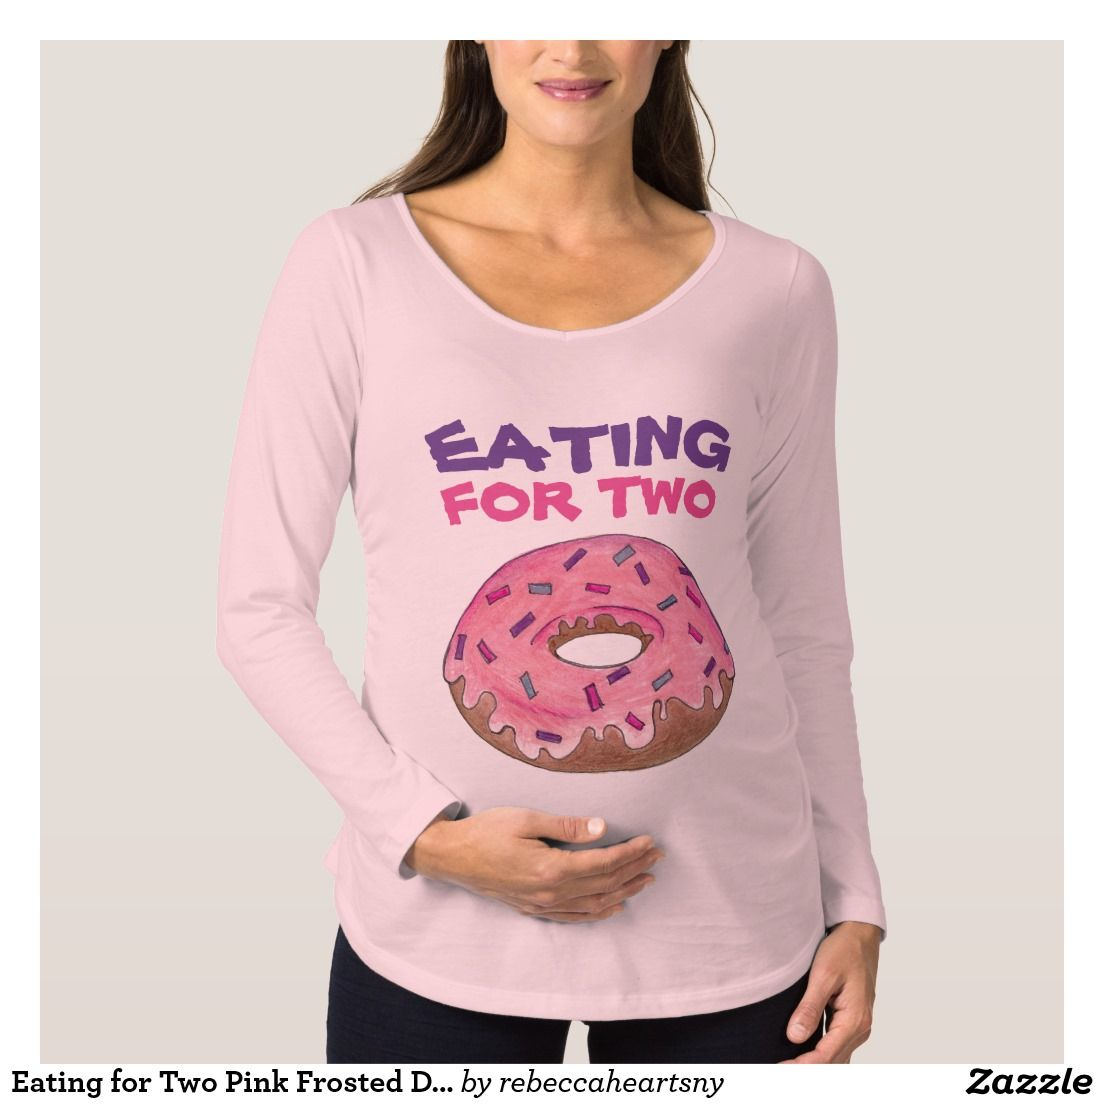 aee9ba41a Eating for Two Pink Frosted Donut Baby Maternity T Maternity T-Shirt ...